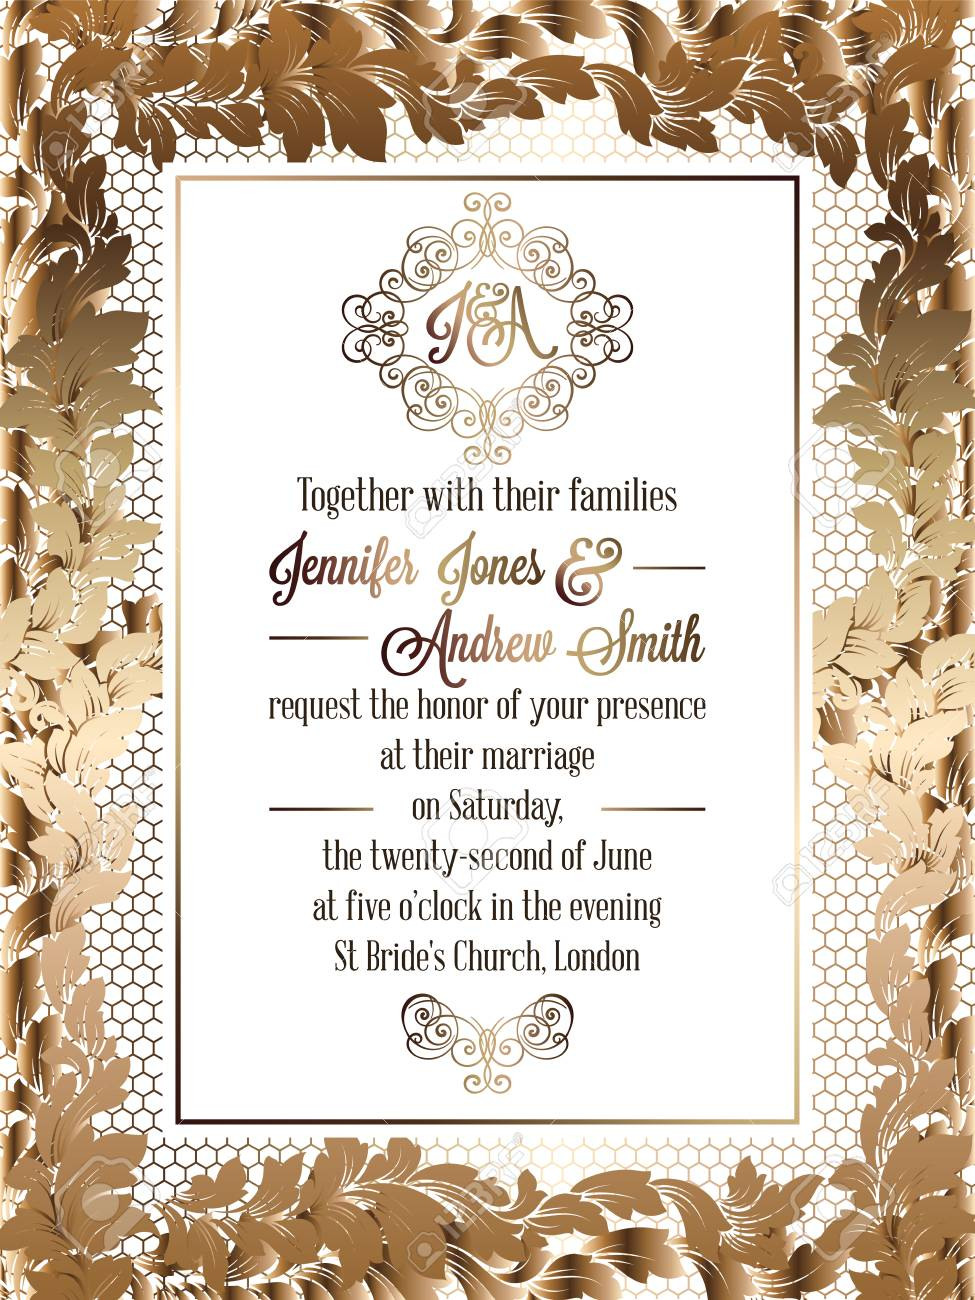 Vintage baroque style wedding invitation card template elegant vector vintage baroque style wedding invitation card template elegant formal design with damask background traditional decoration for wedding stopboris Images